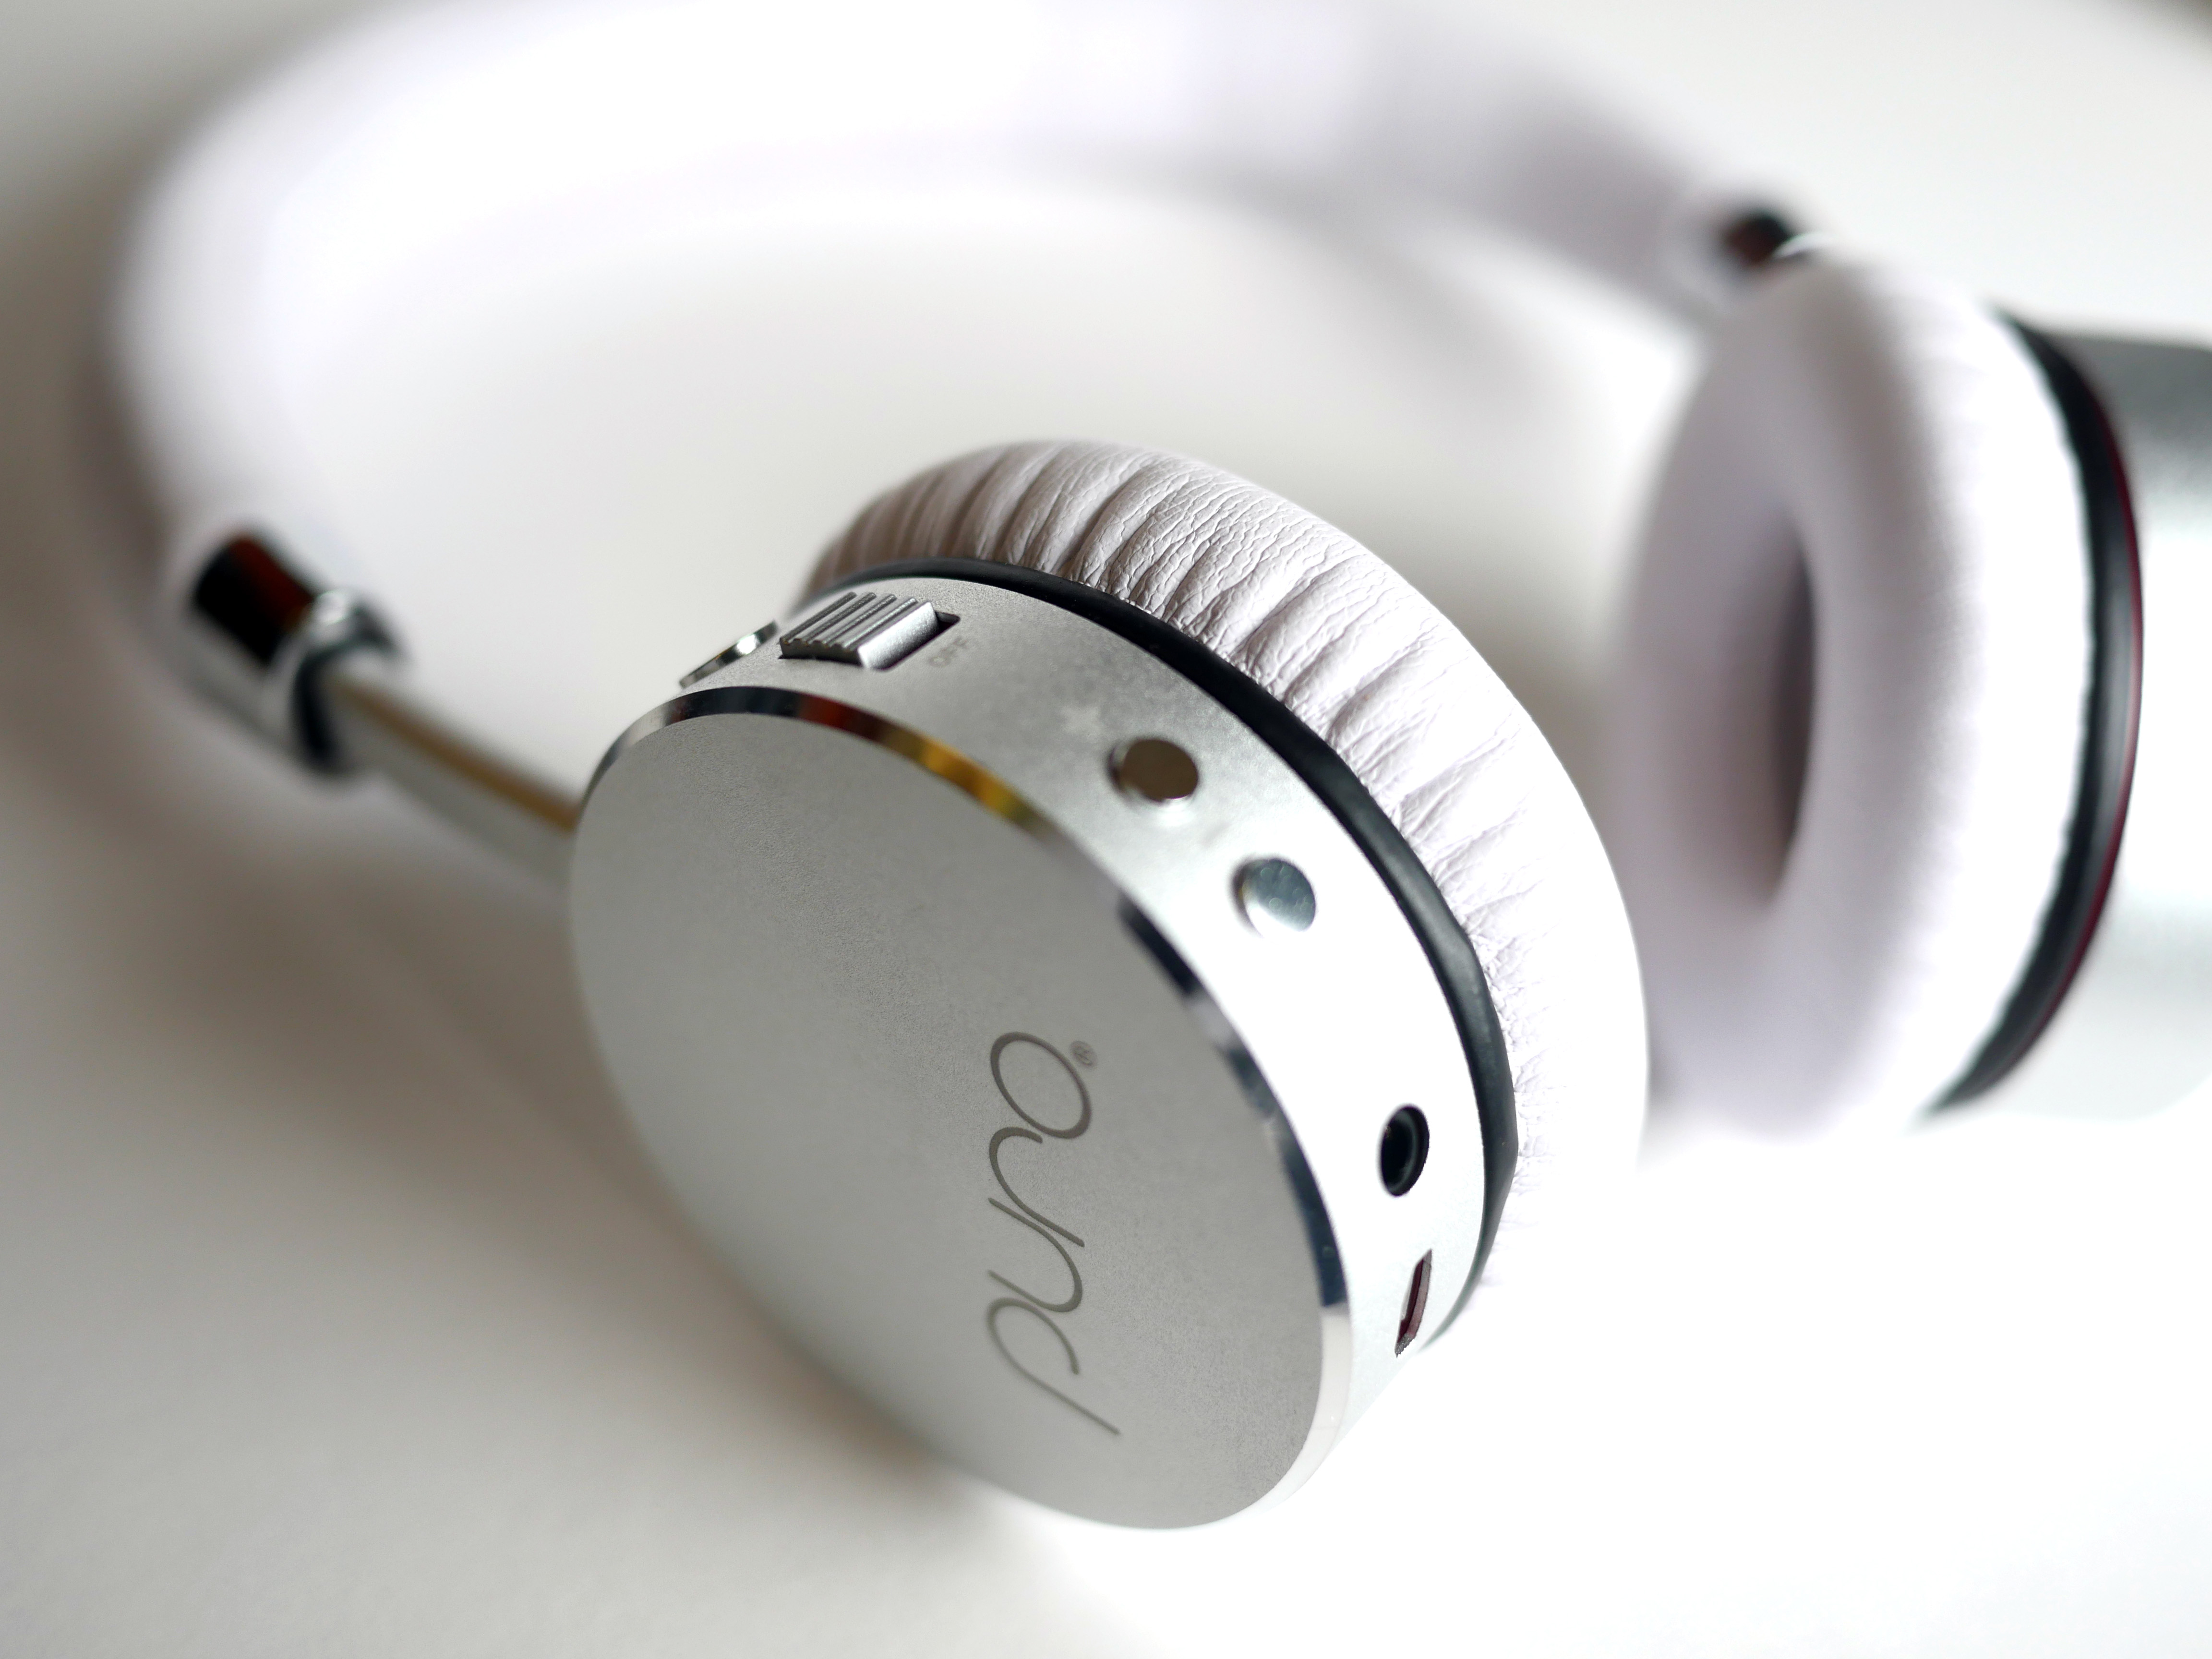 Puro Sound Labs Officially Launches Hearing Healthy Headphones For The Entire Family To Enjoy